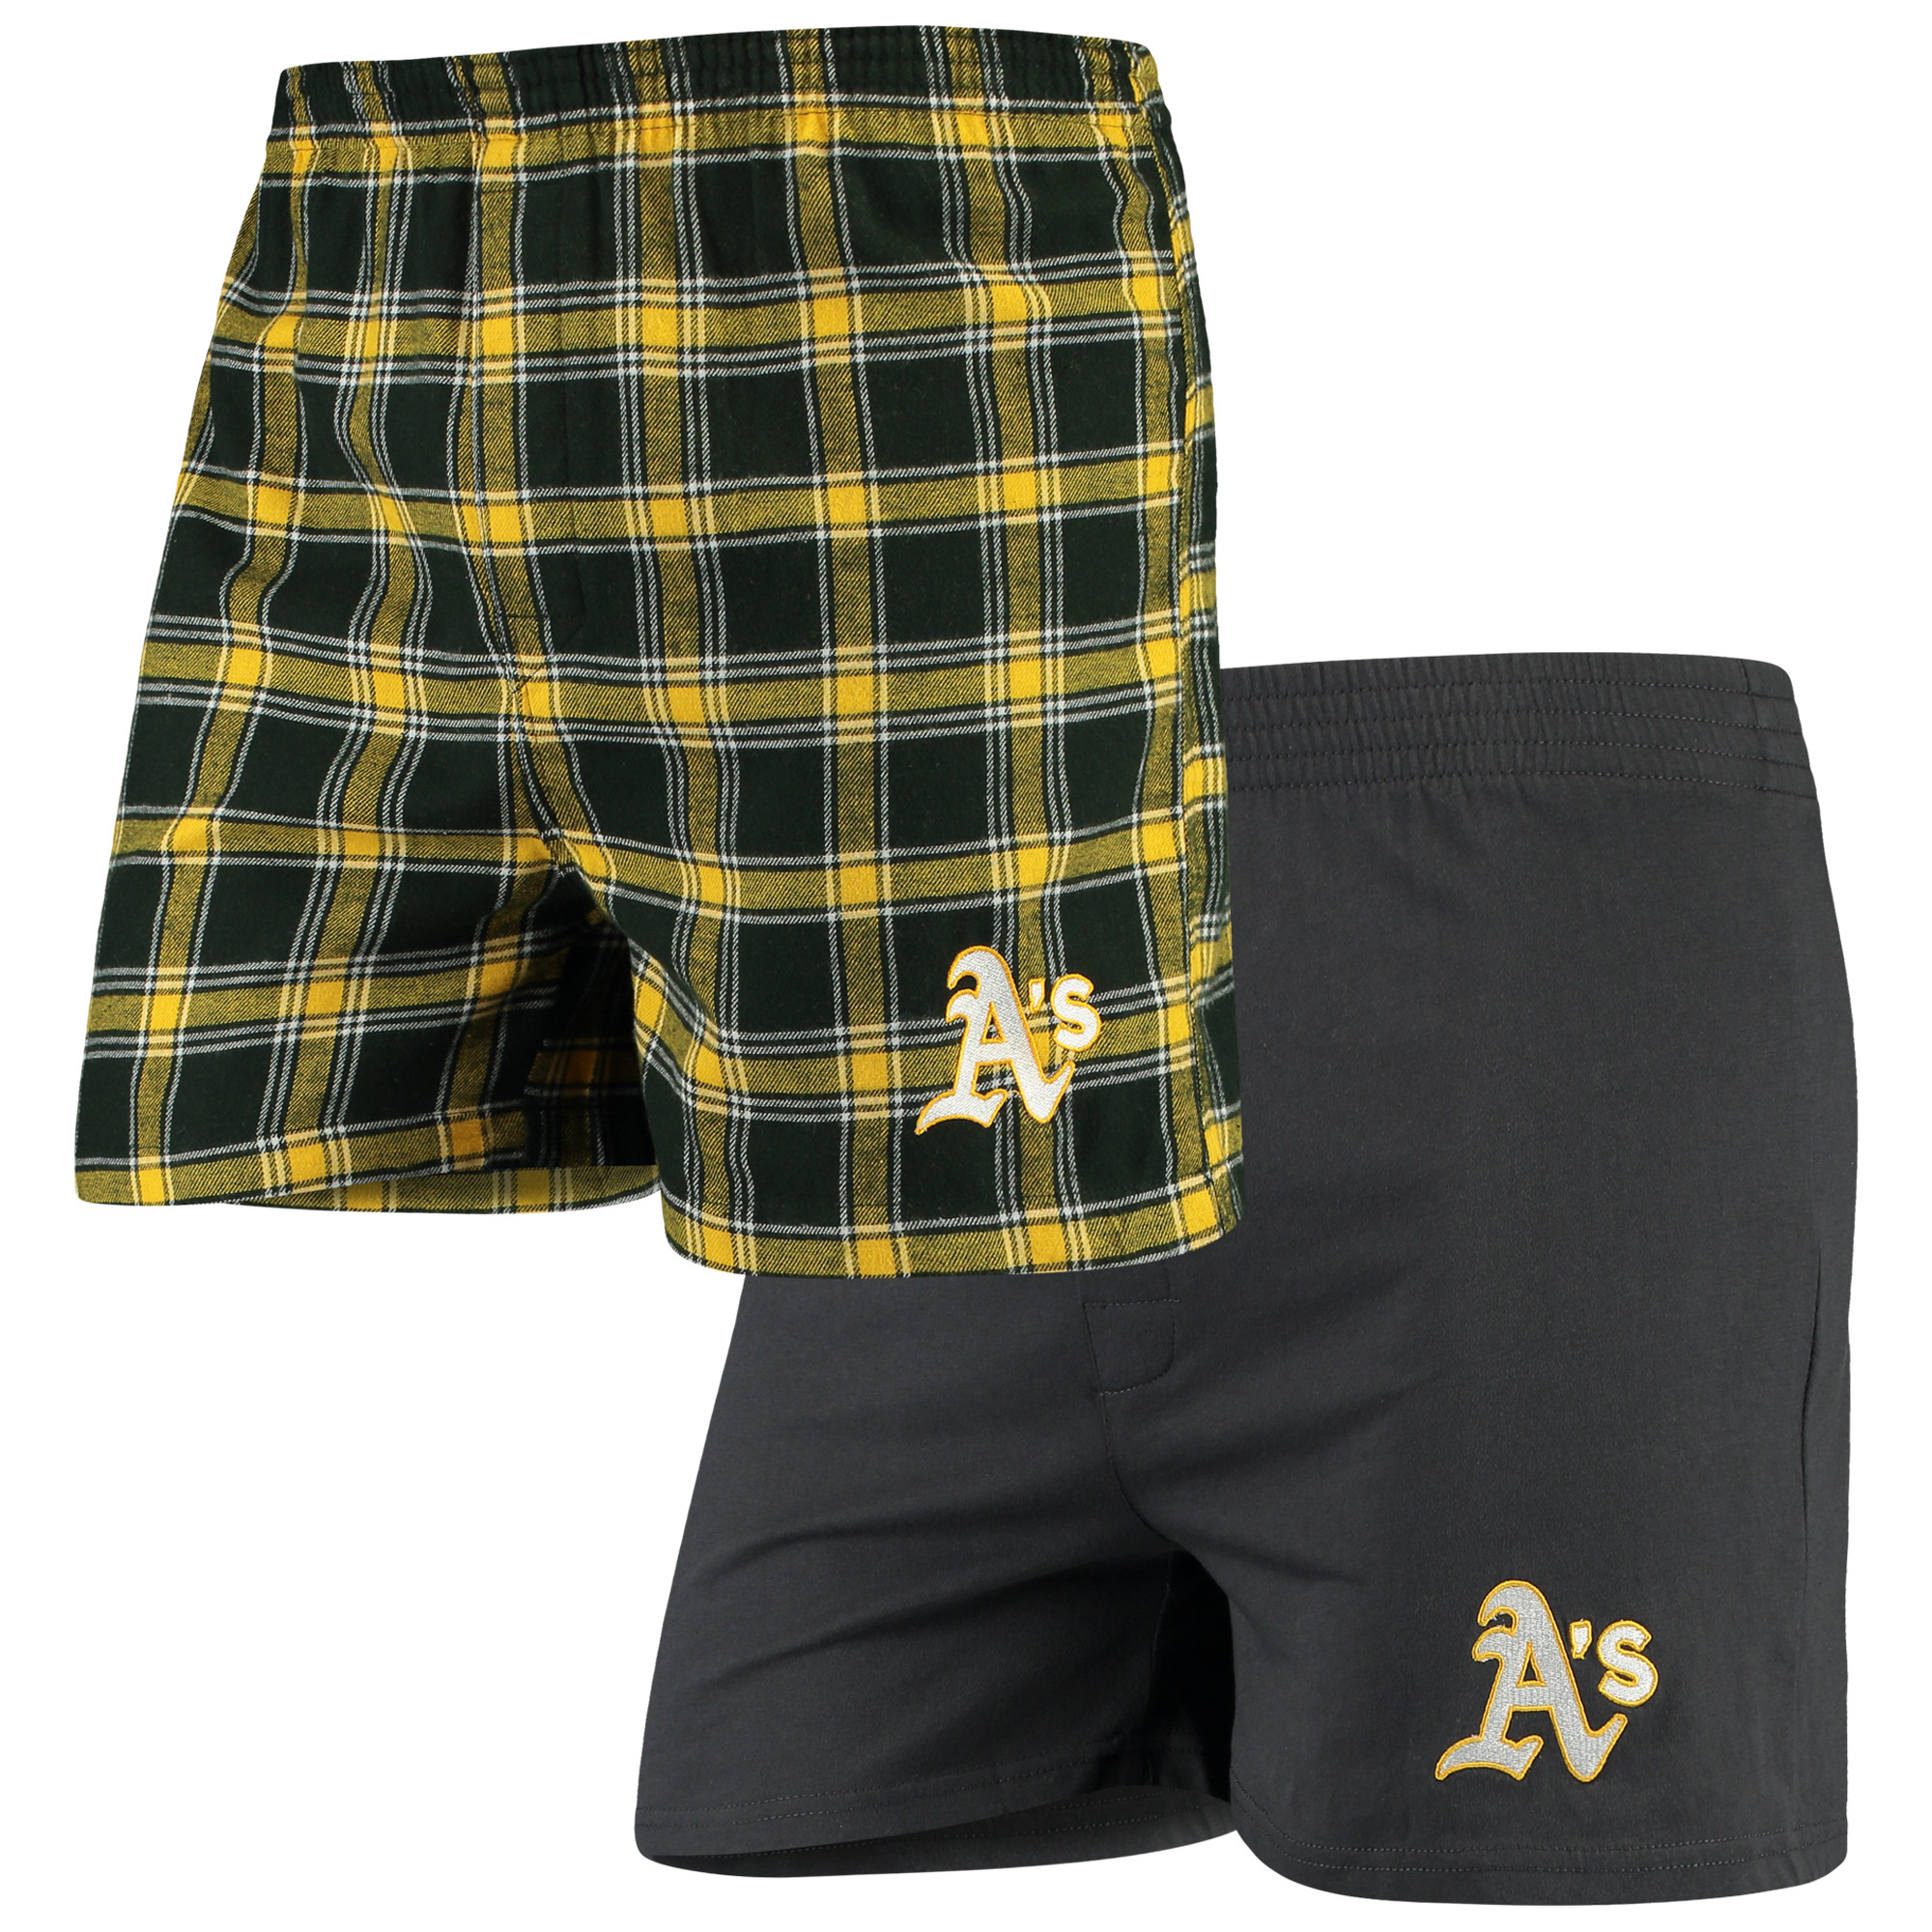 Oakland Athletics Concepts Sport 2-Pack Boxer Shorts - Green